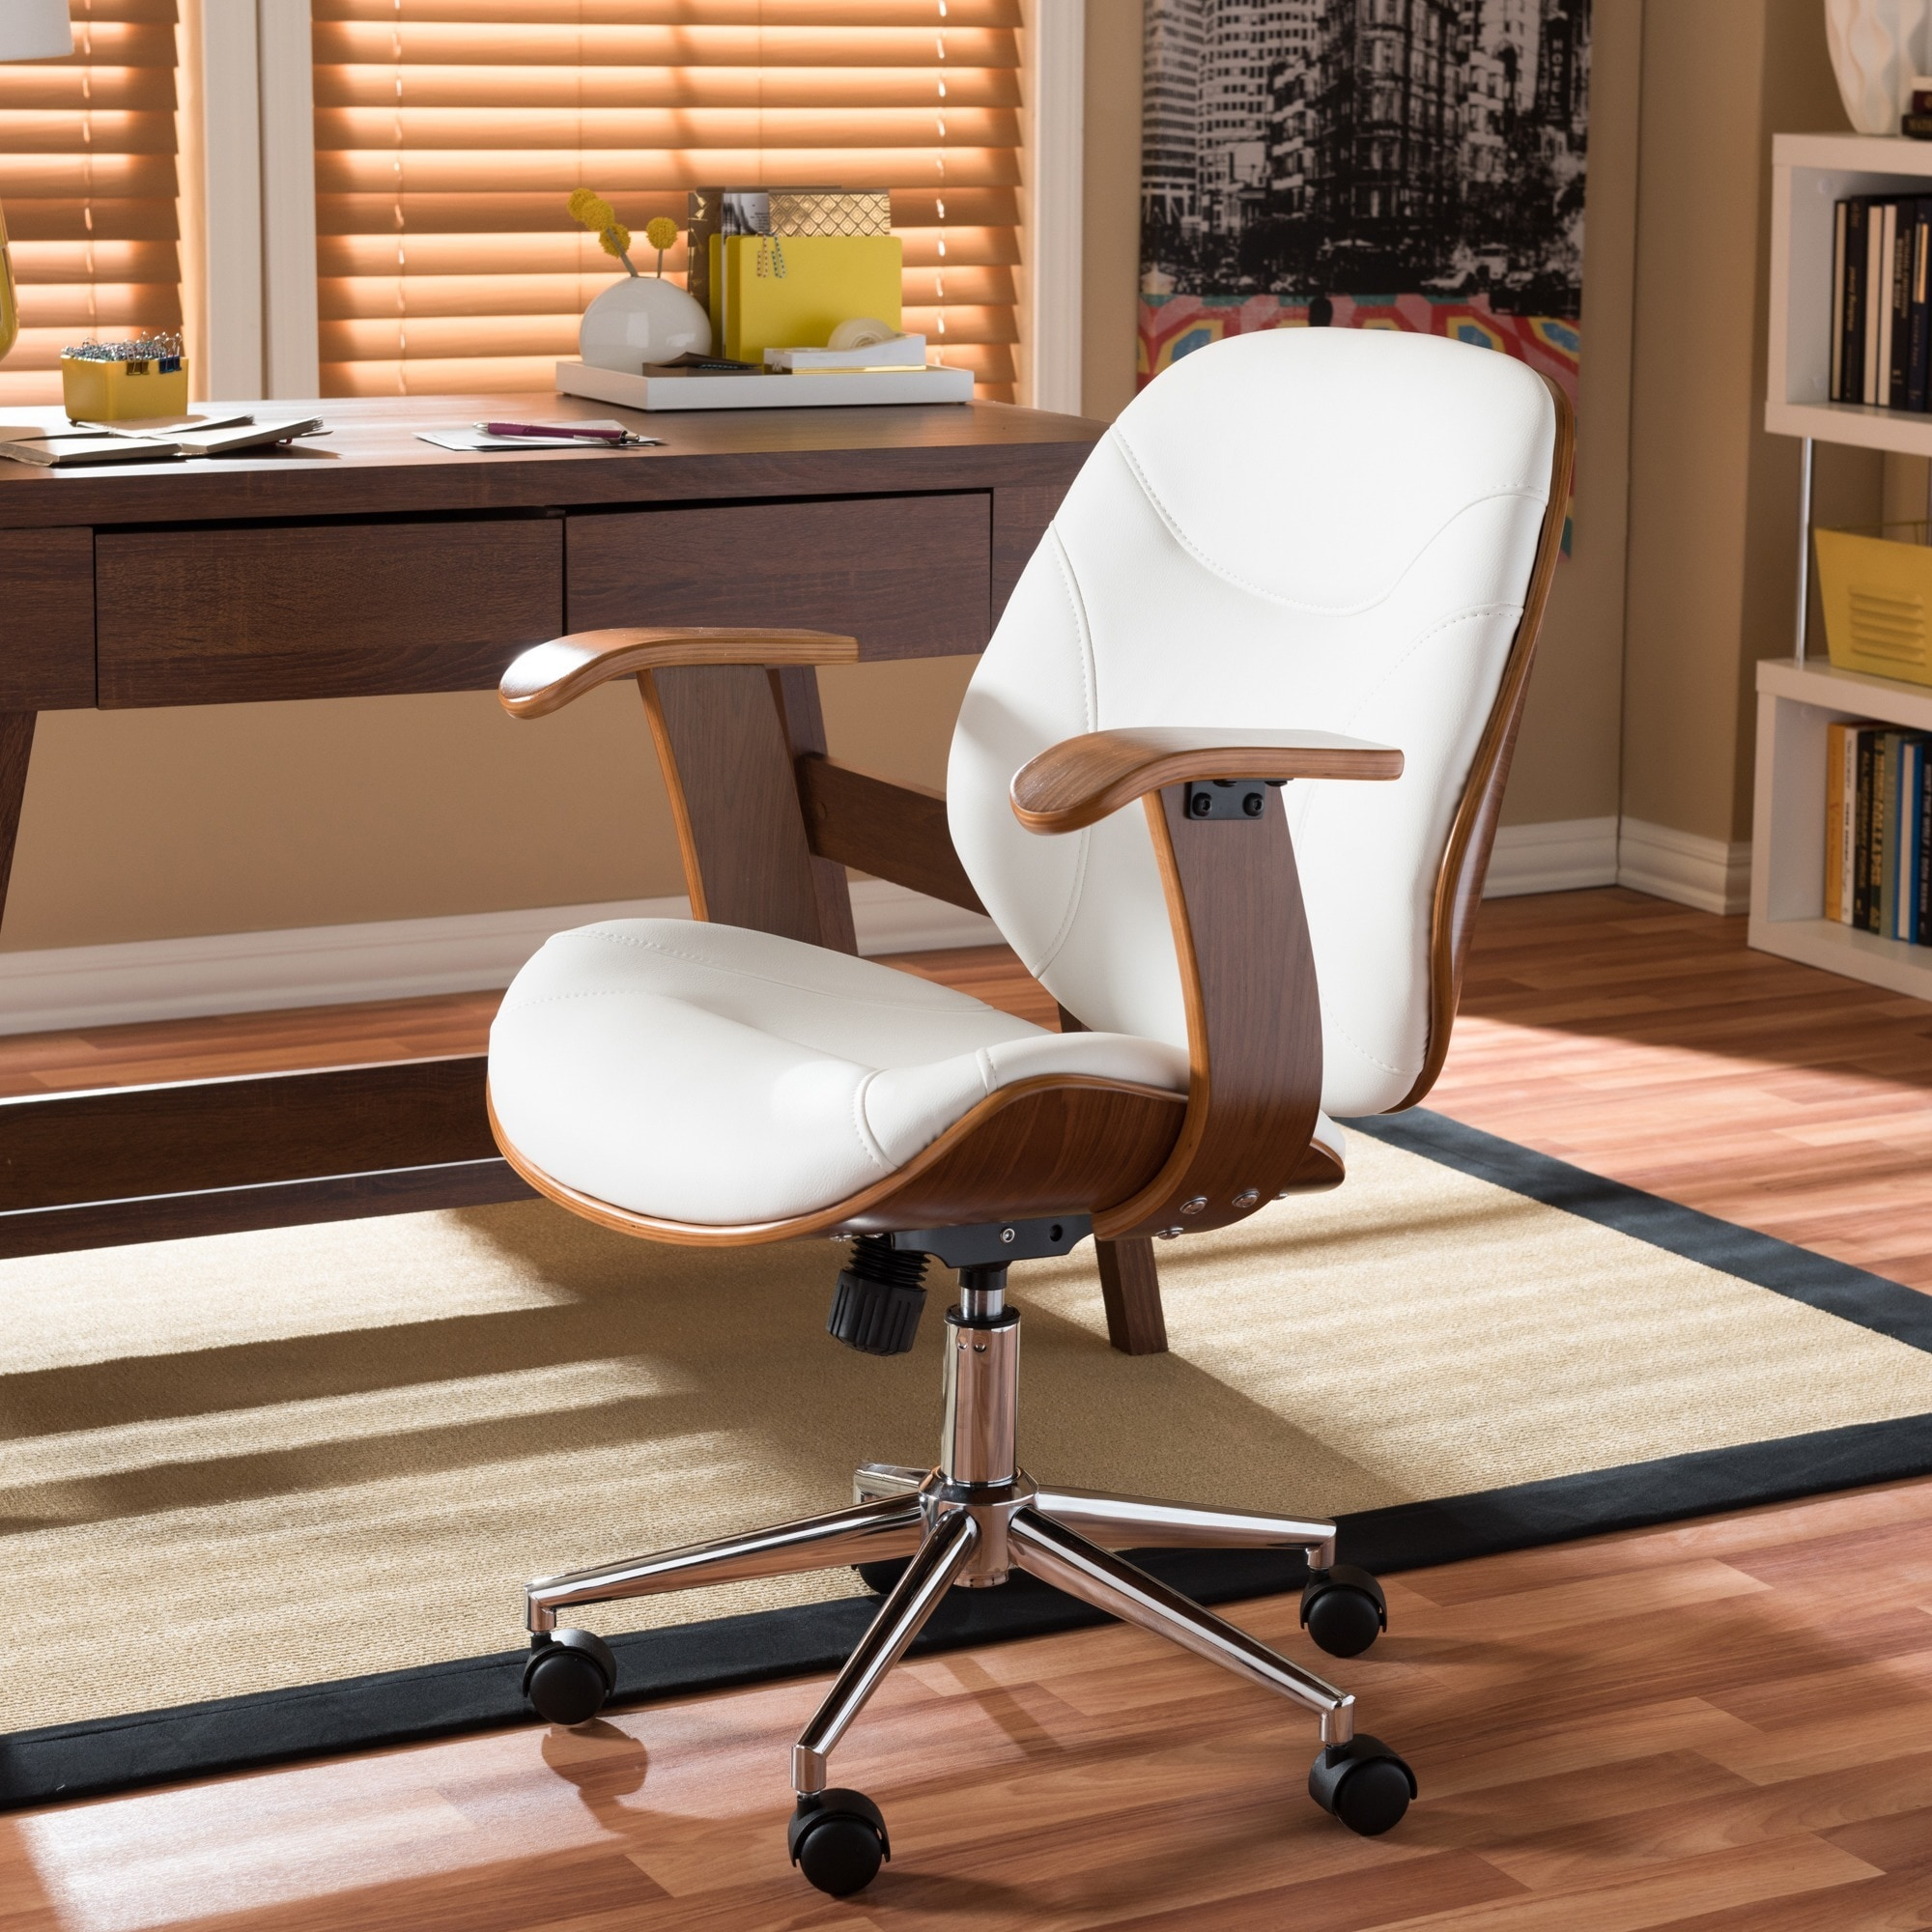 Marvelous Baxton Studio Rathburn Walnut Frame Black Or White Faux Leather Modern Office Chair Home Interior And Landscaping Palasignezvosmurscom